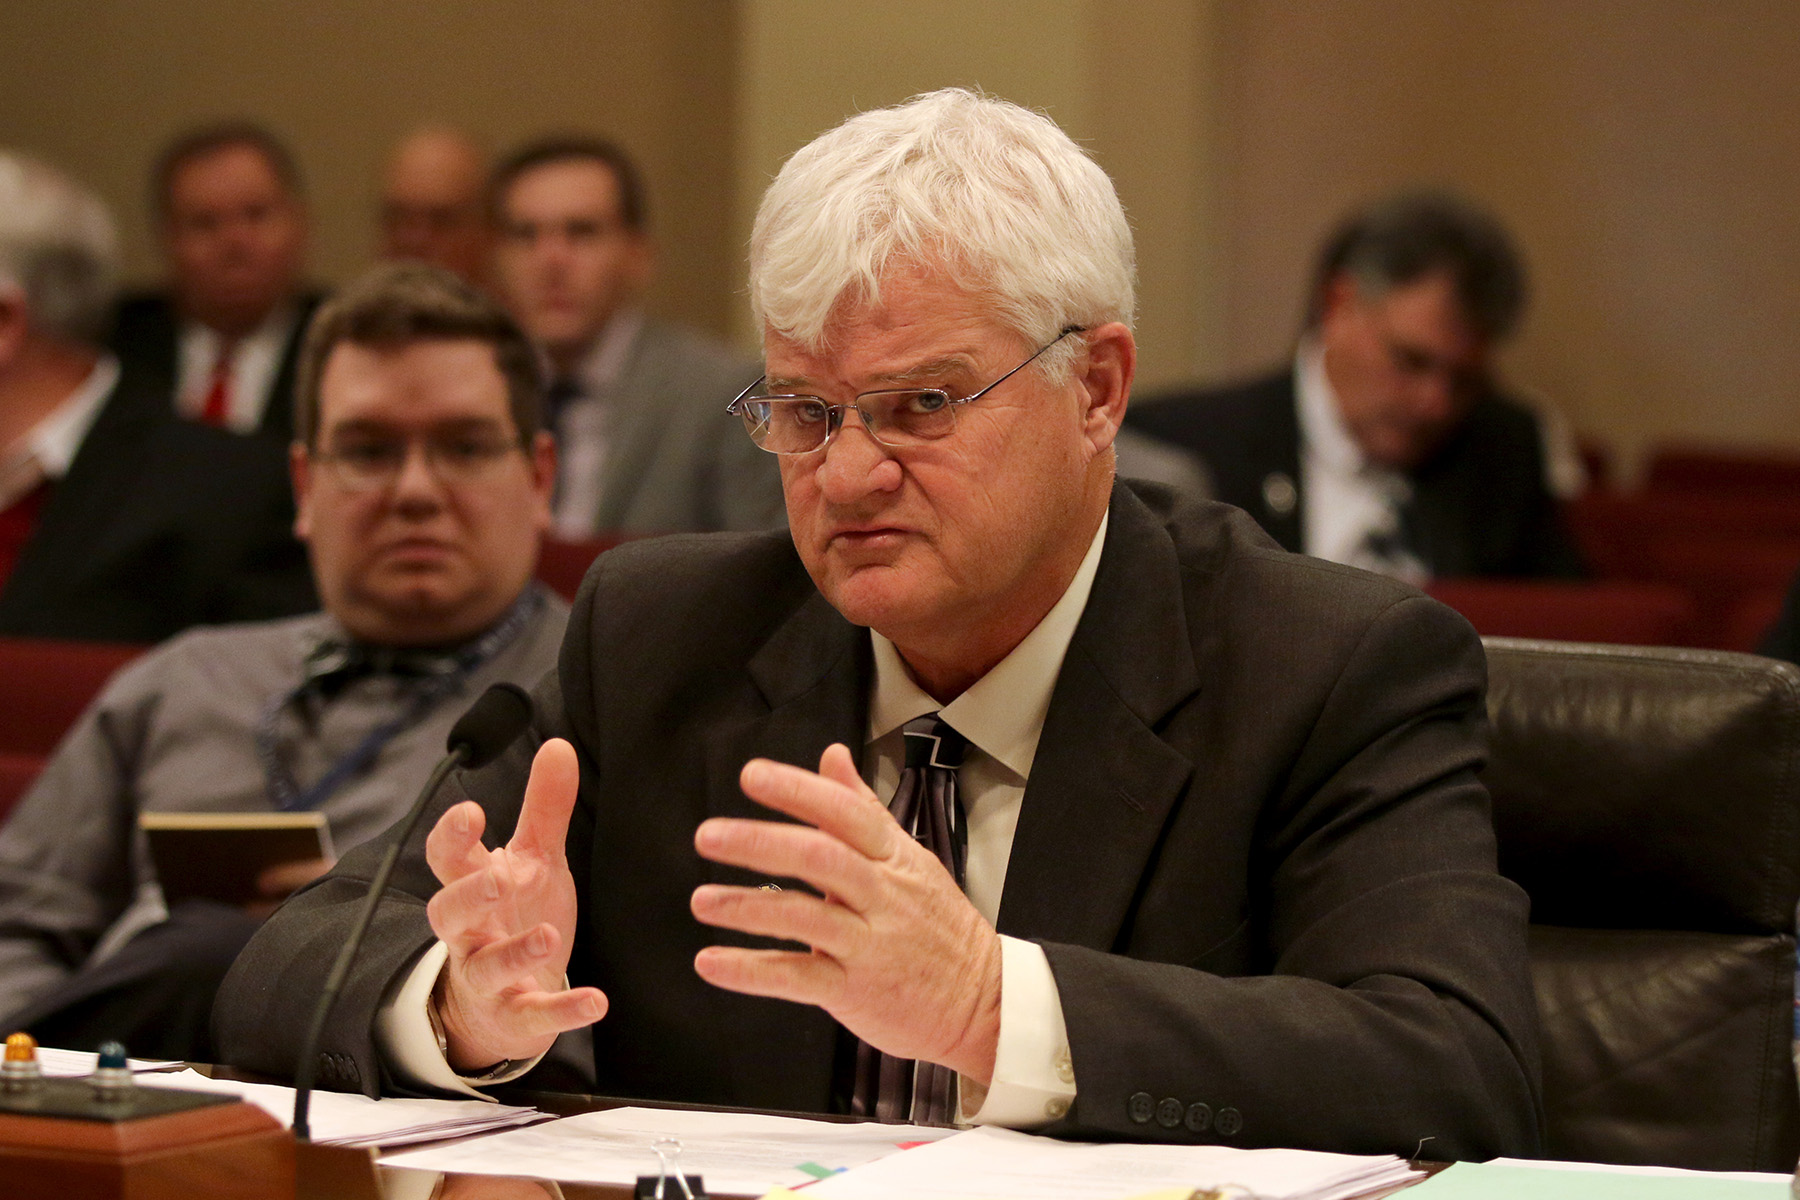 Groene Successfully Pulls His Bill from Committee, Will Get Full Debate